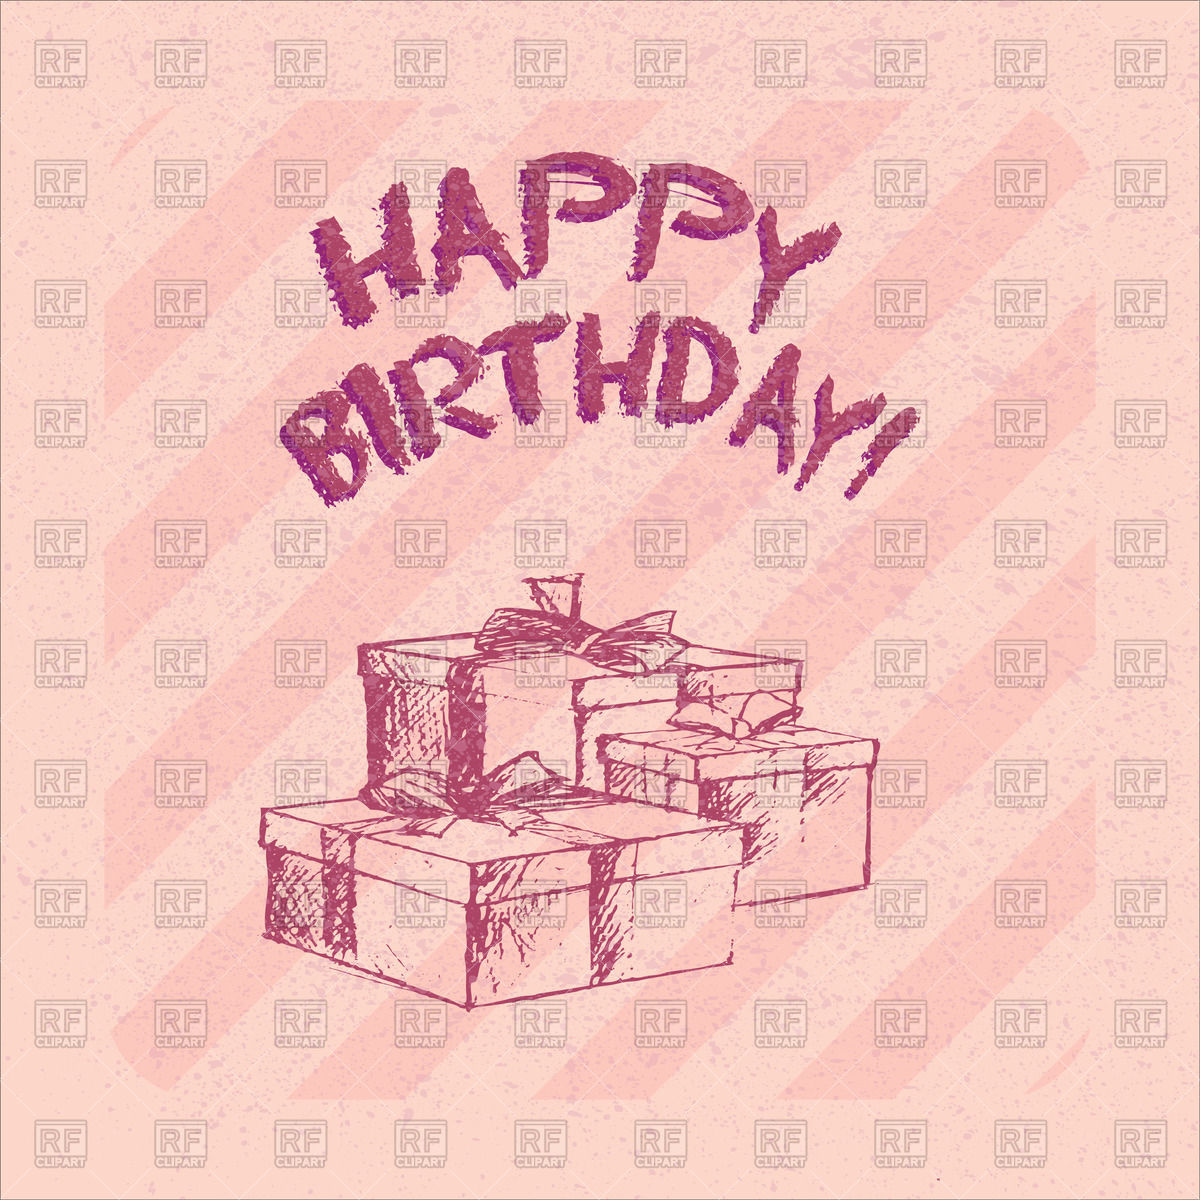 free clipart birthday wishes ; birthday-greeting-card-with-gift-boxes-Download-Royalty-free-Vector-File-EPS-146564